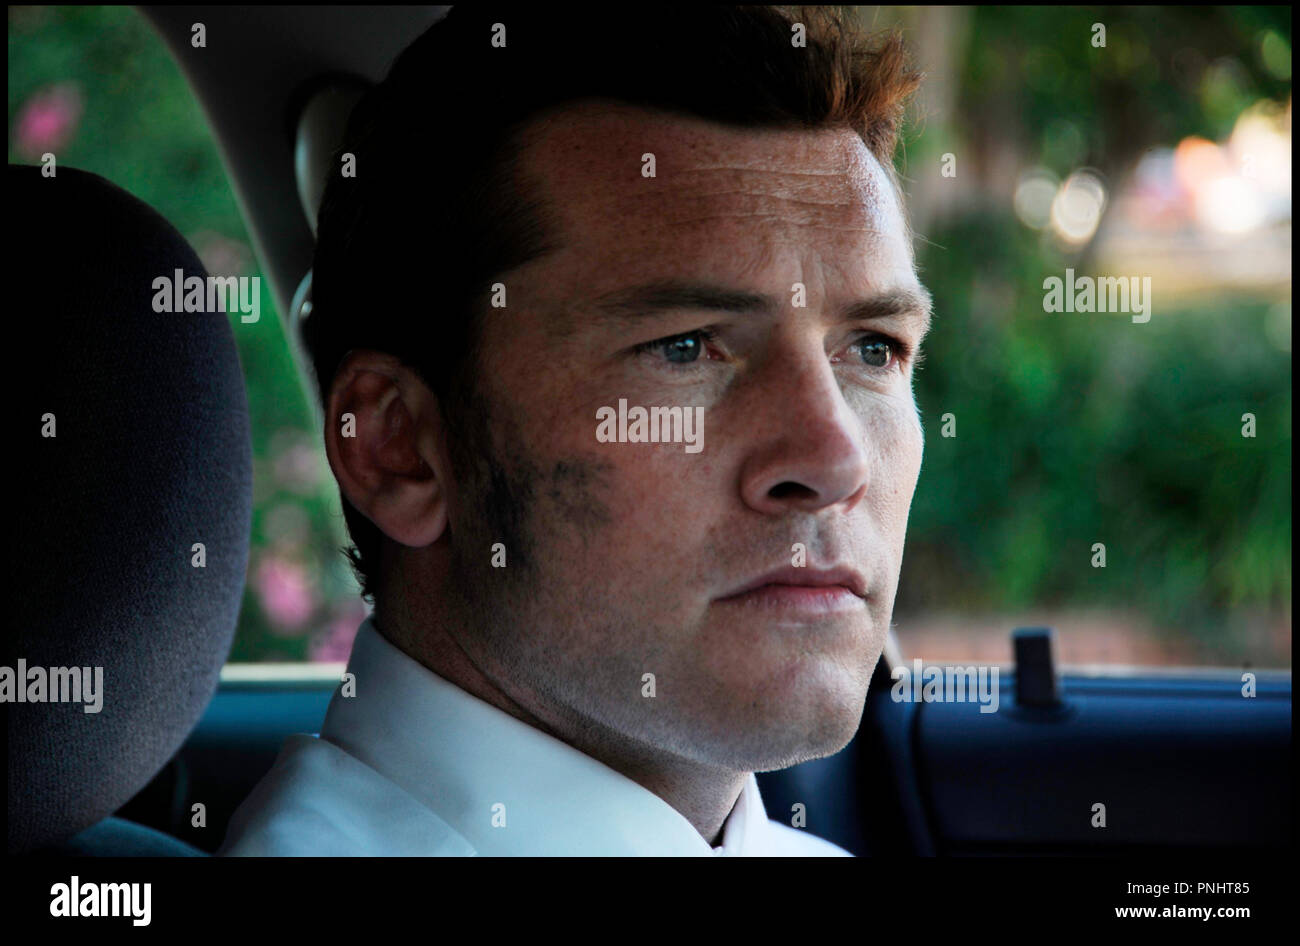 Prod DB © Forward Pass - Gideon Productions - Infinity Media / DR KILLING FIELDS (TEXAS KILLING FIELDS) de Ami Canaan Mann 2011 USA avec Sam Worthington tiré d'une histoire vraie, polar, thriller - Stock Image